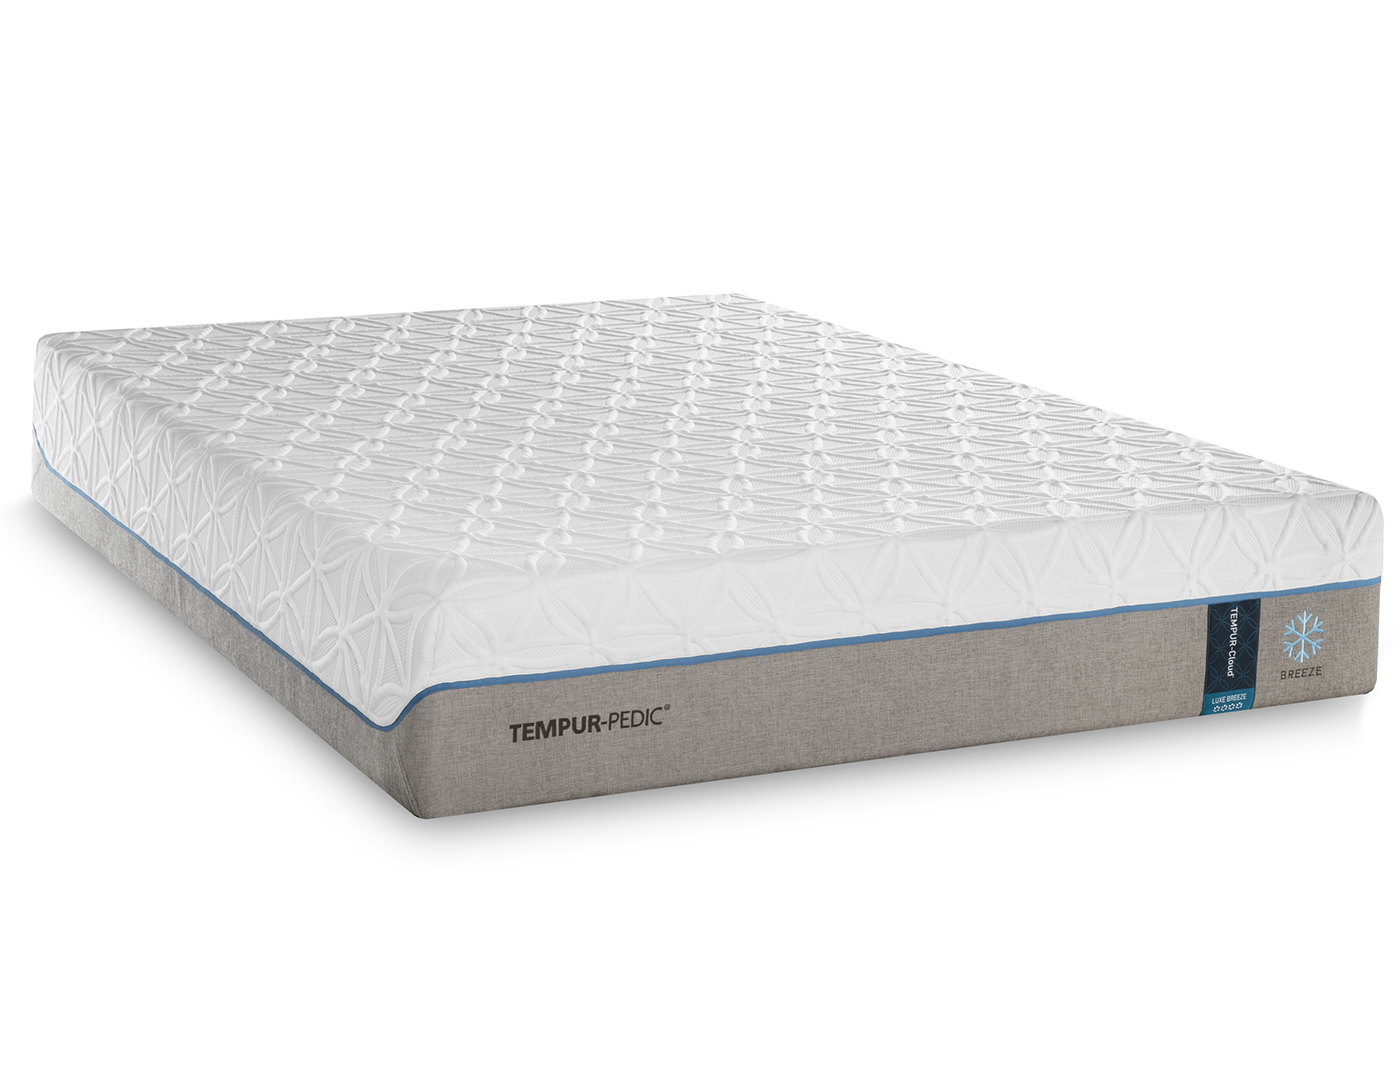 Tempur Flex Supreme Breeze King Mattress Steinhafels